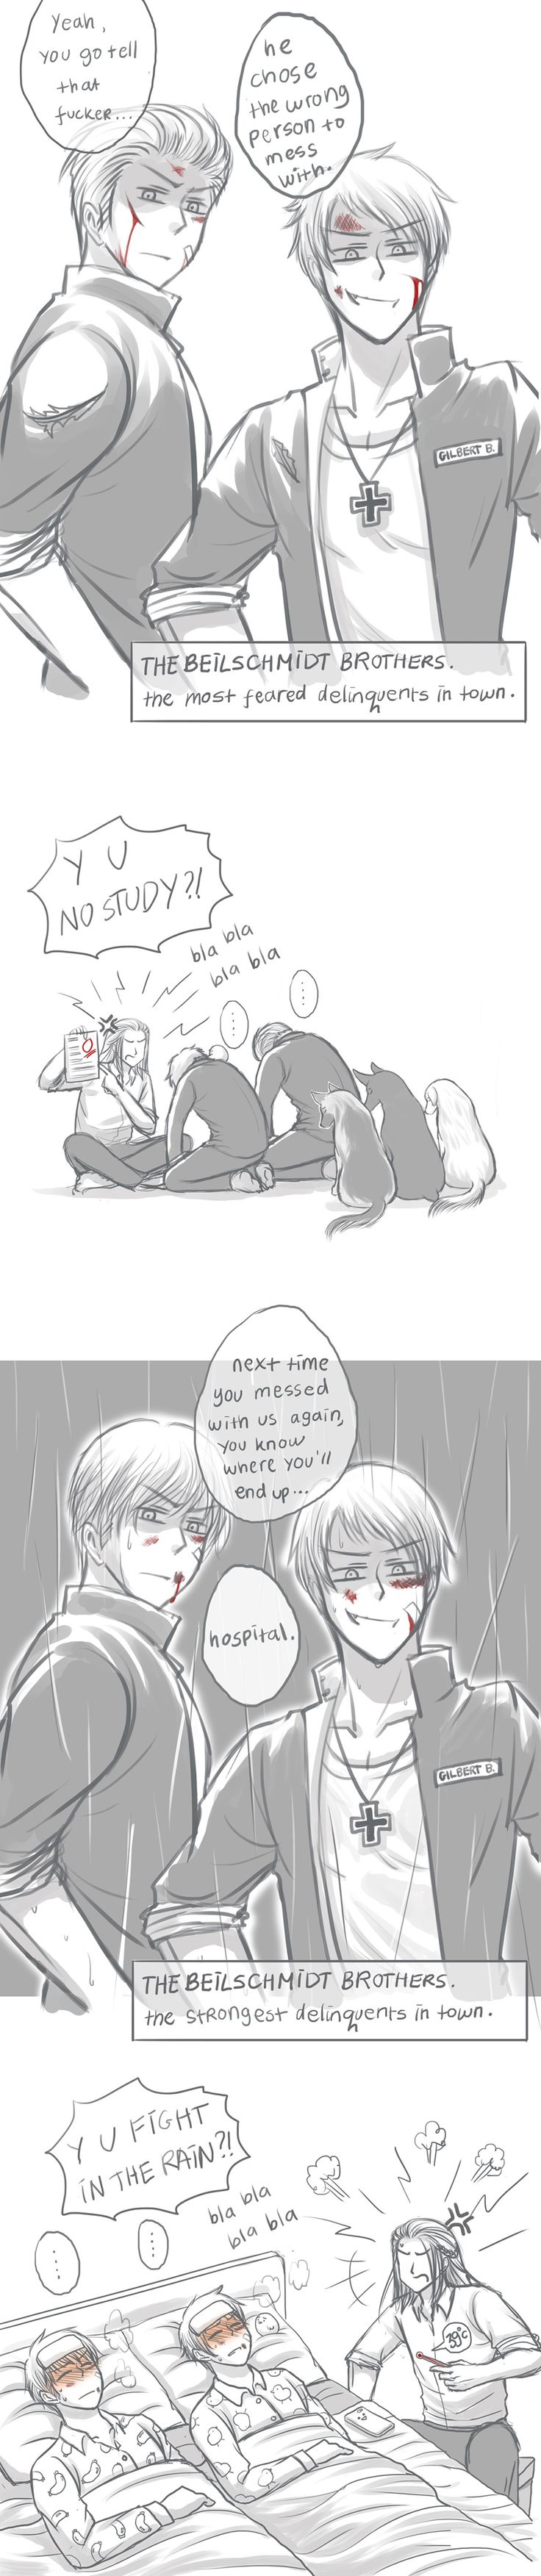 so BA by kuroneko3132.deviantart.com on @deviantART Des-Chan ~ aways respect your parent these german brother have their point proven